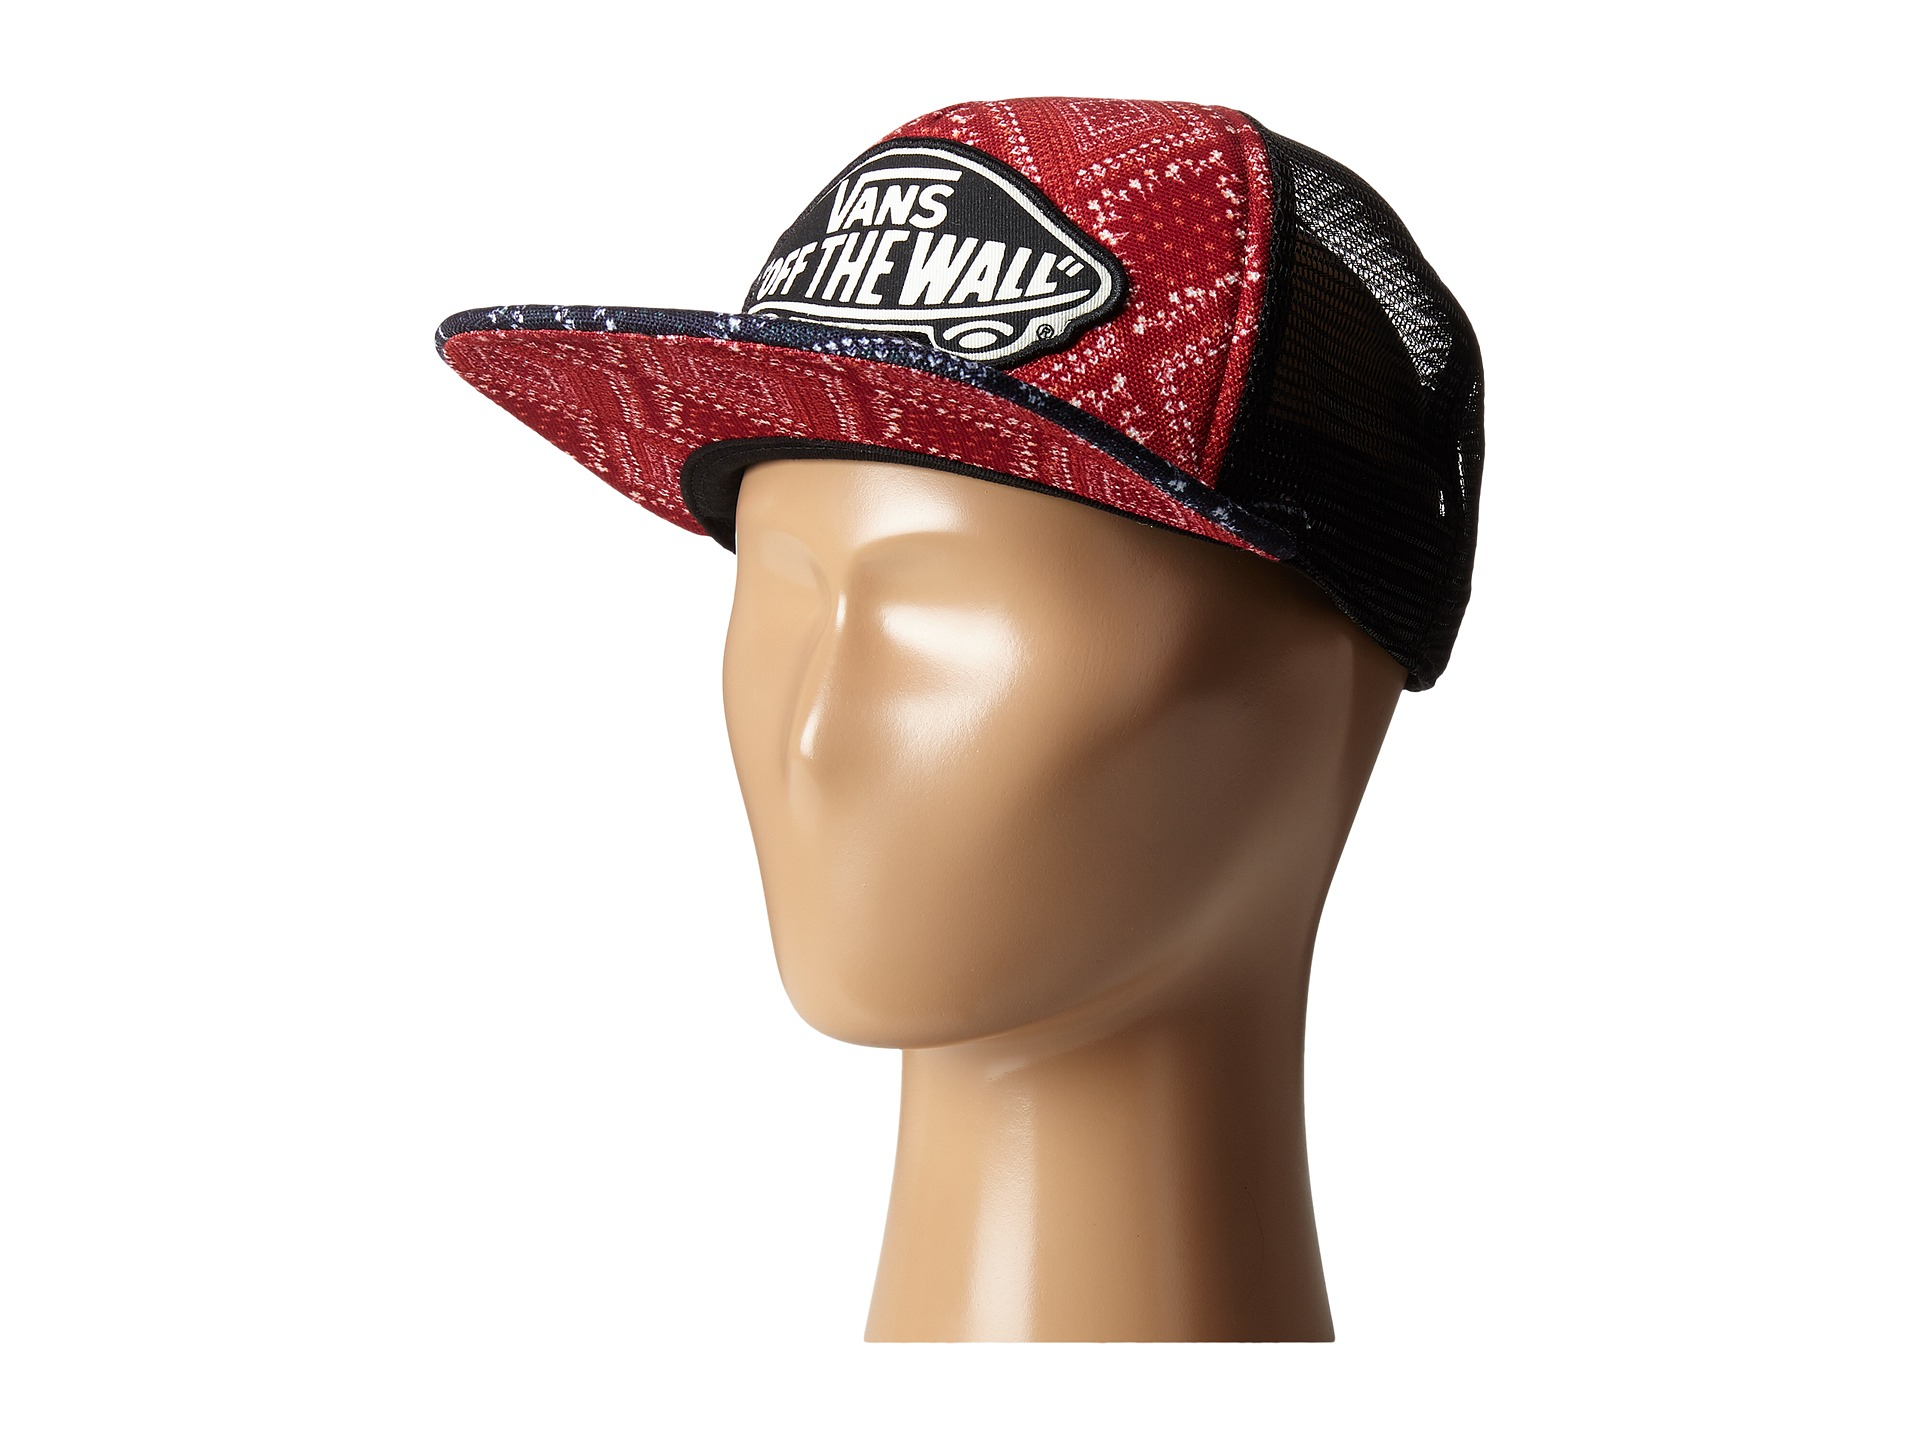 0efed954ba Lyst - Vans Trucker Hat In Hawaiian Tropical Print